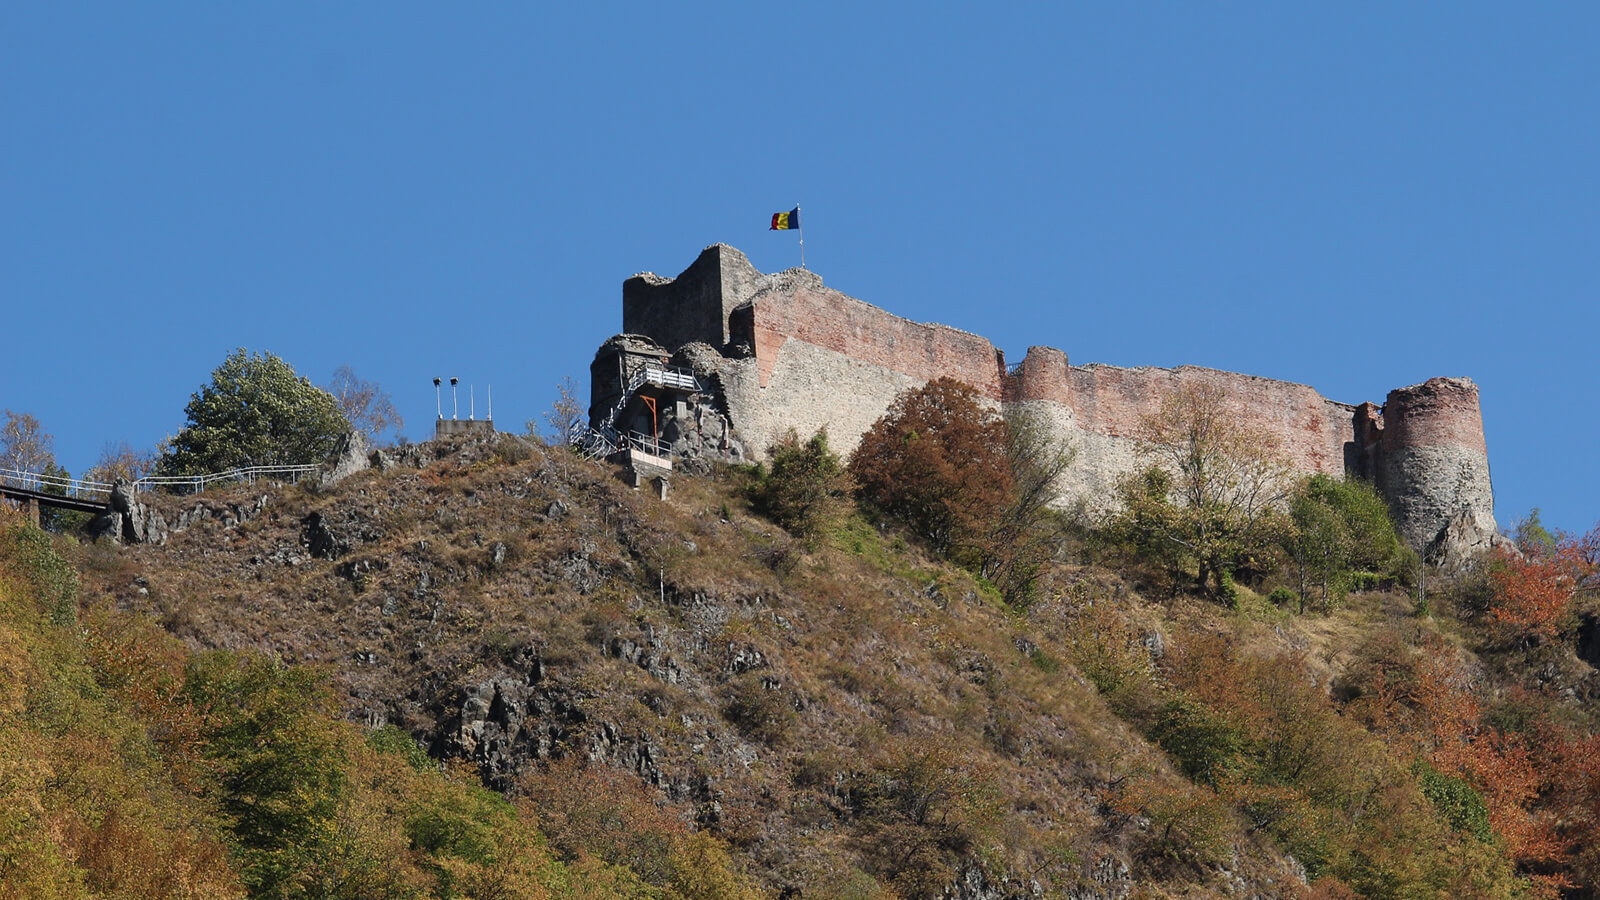 Dracula was inspired by the real life ruthlessness of 15h century Vlad the Impaler, and Poenari Castle was his home